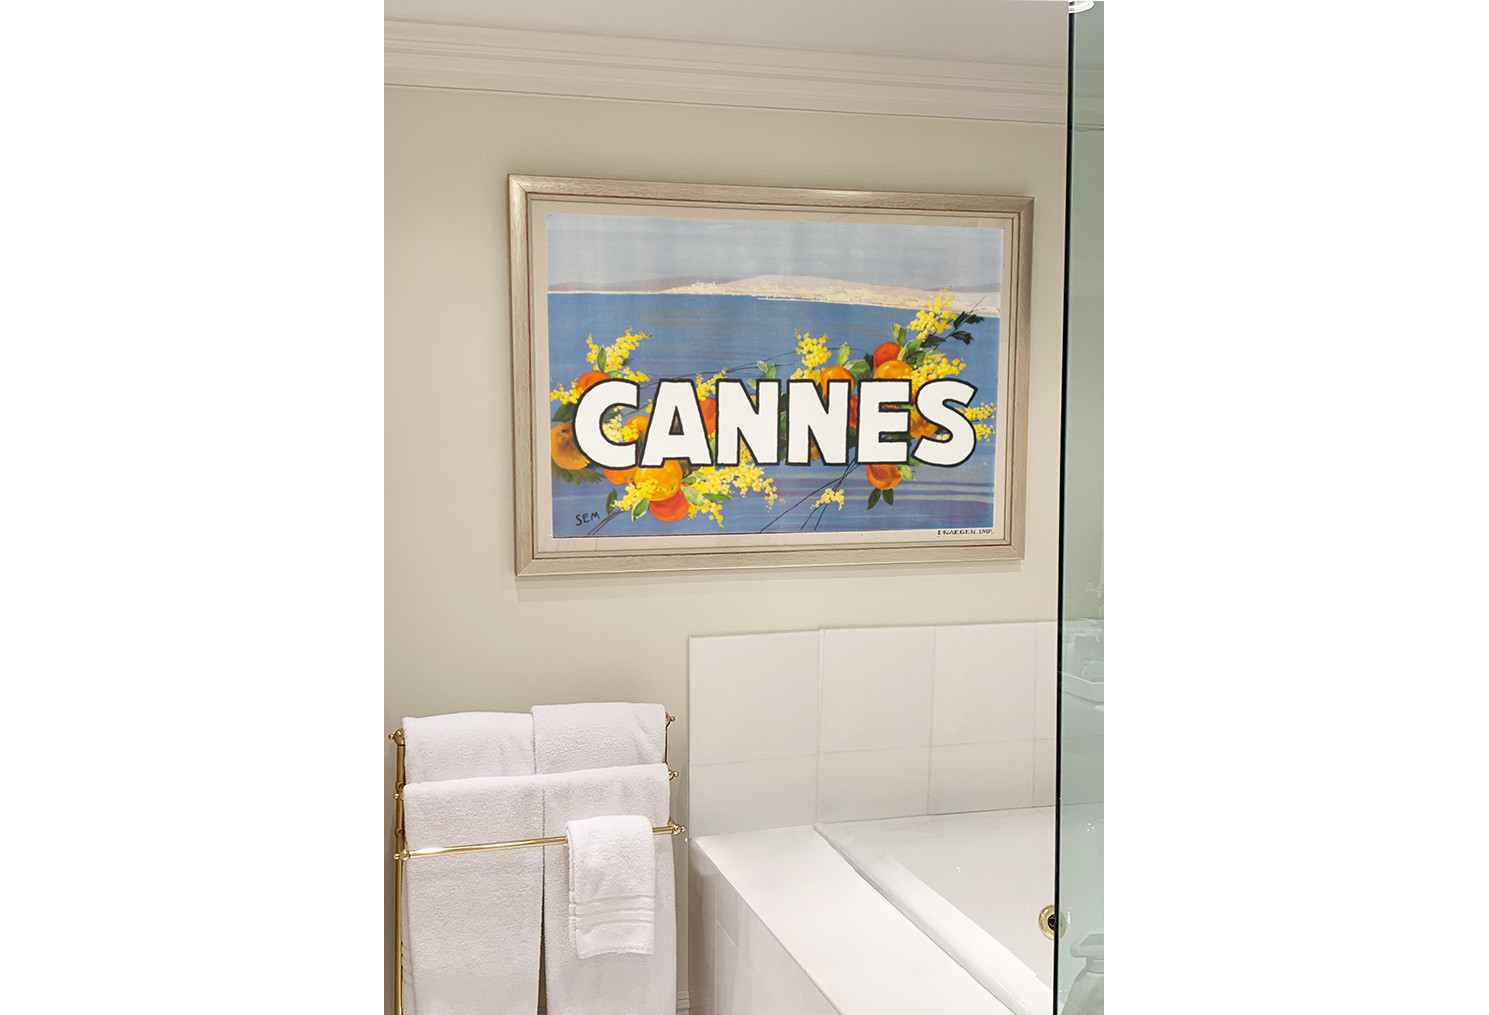 white bathroom with framed Cannes poster on wall; white, blue, orange, yellow